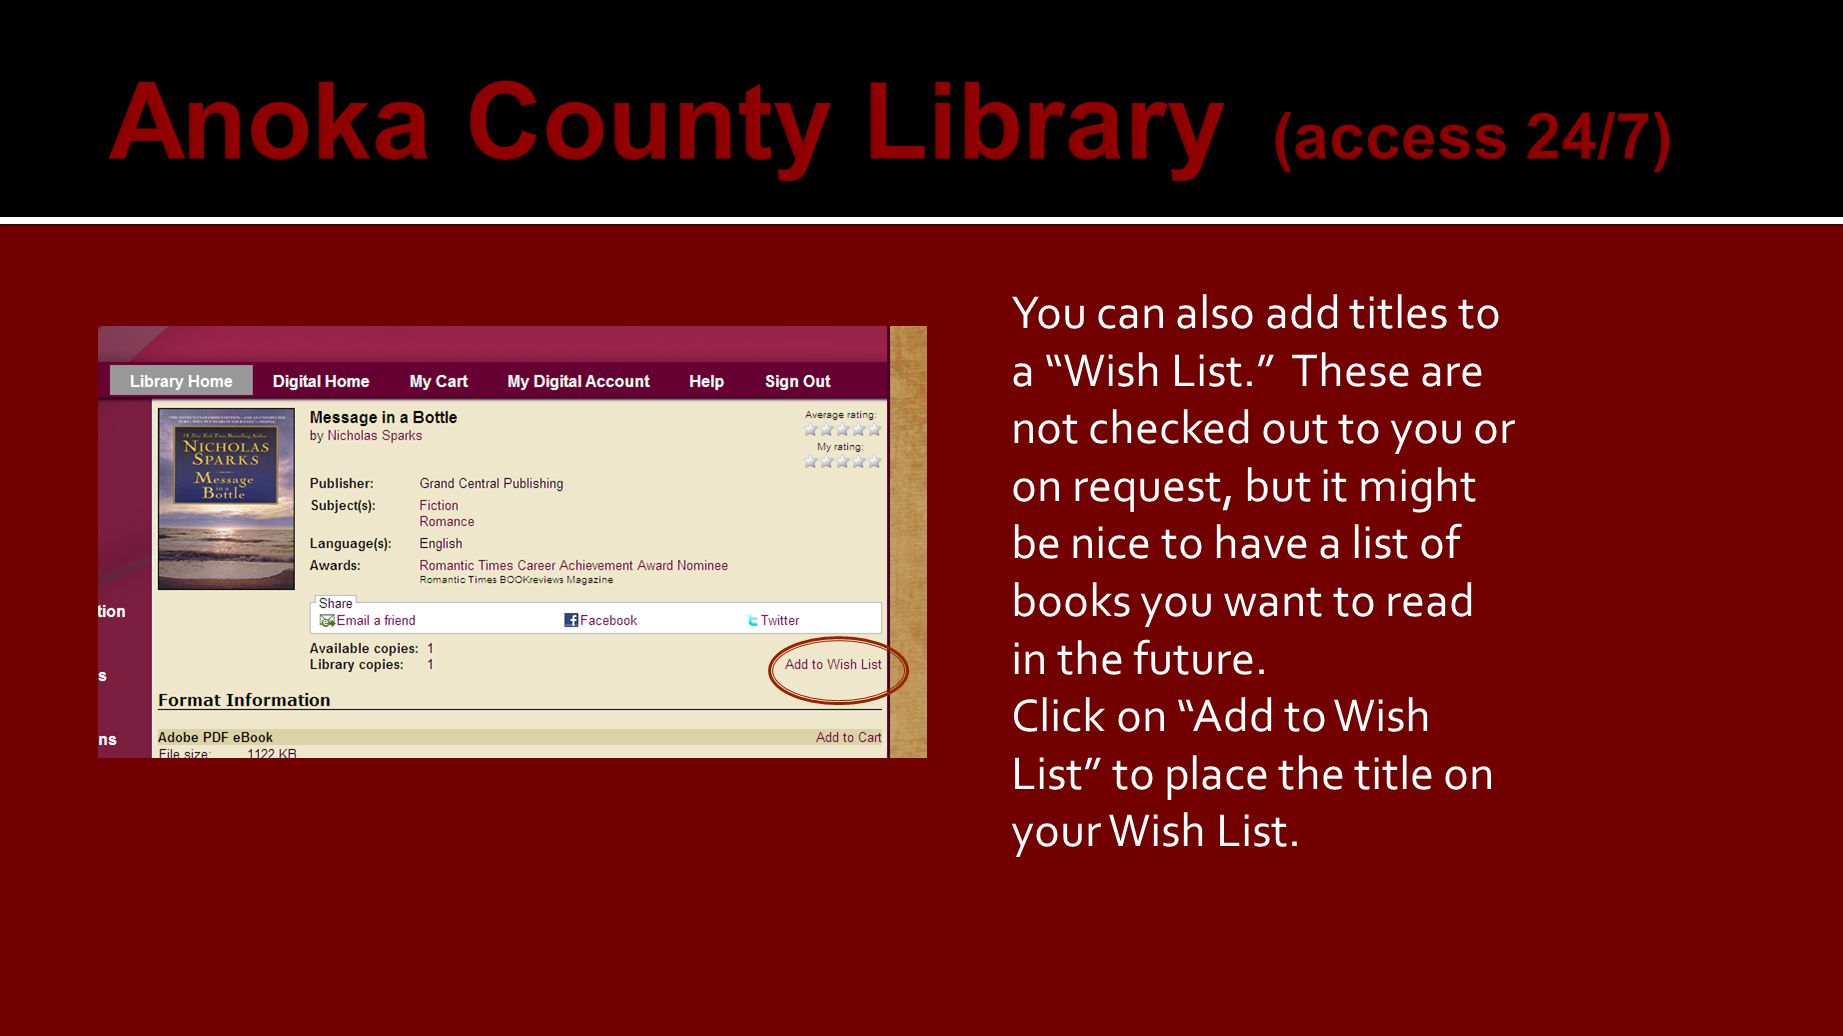 You can also add titles to a Wish List. These are not checked out to you or on request, but it might be nice to have a list of books you want to read in the future.